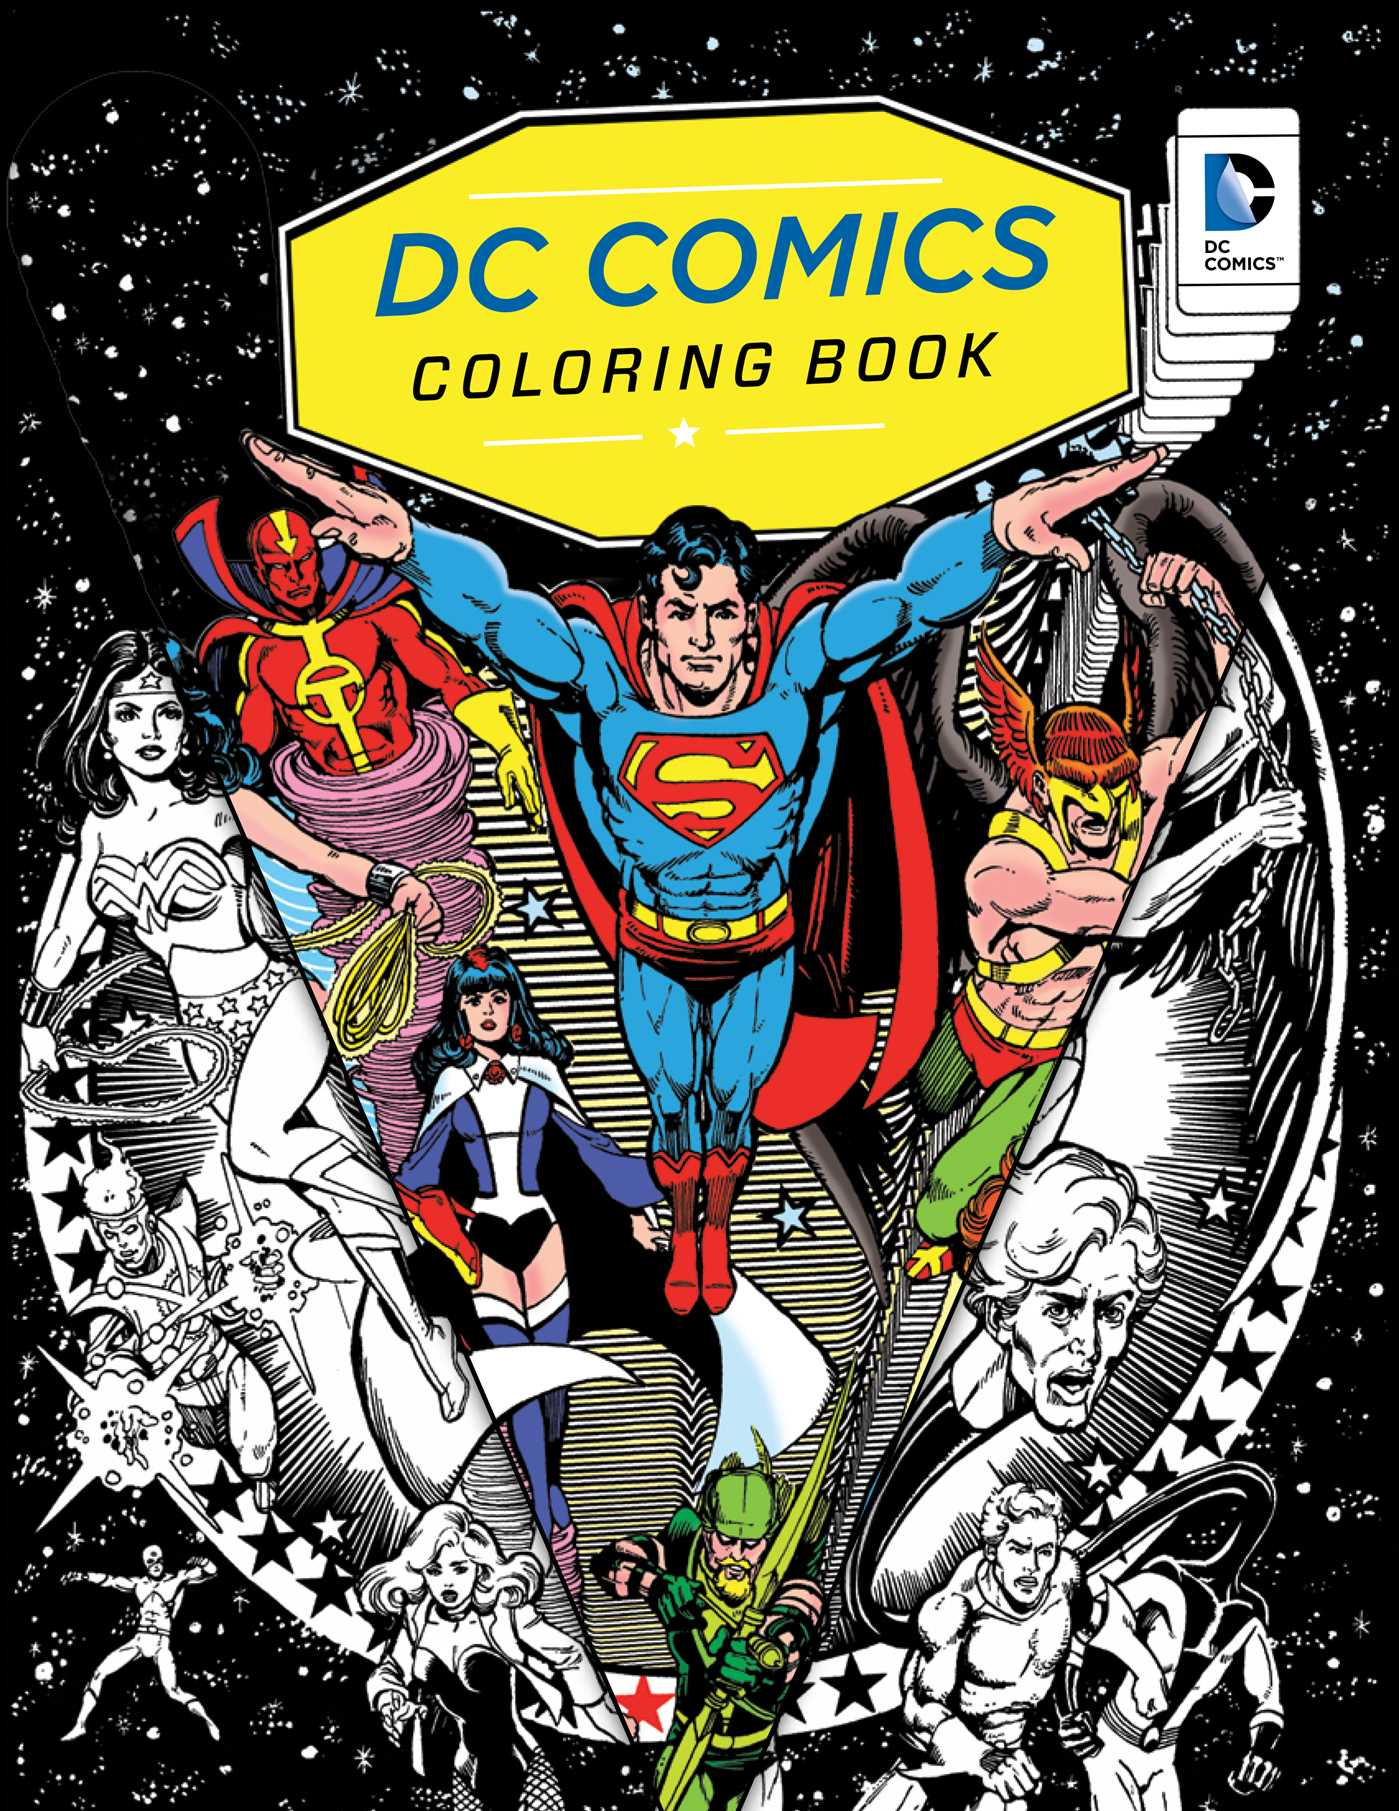 dc comics coloring book book by insight editions official